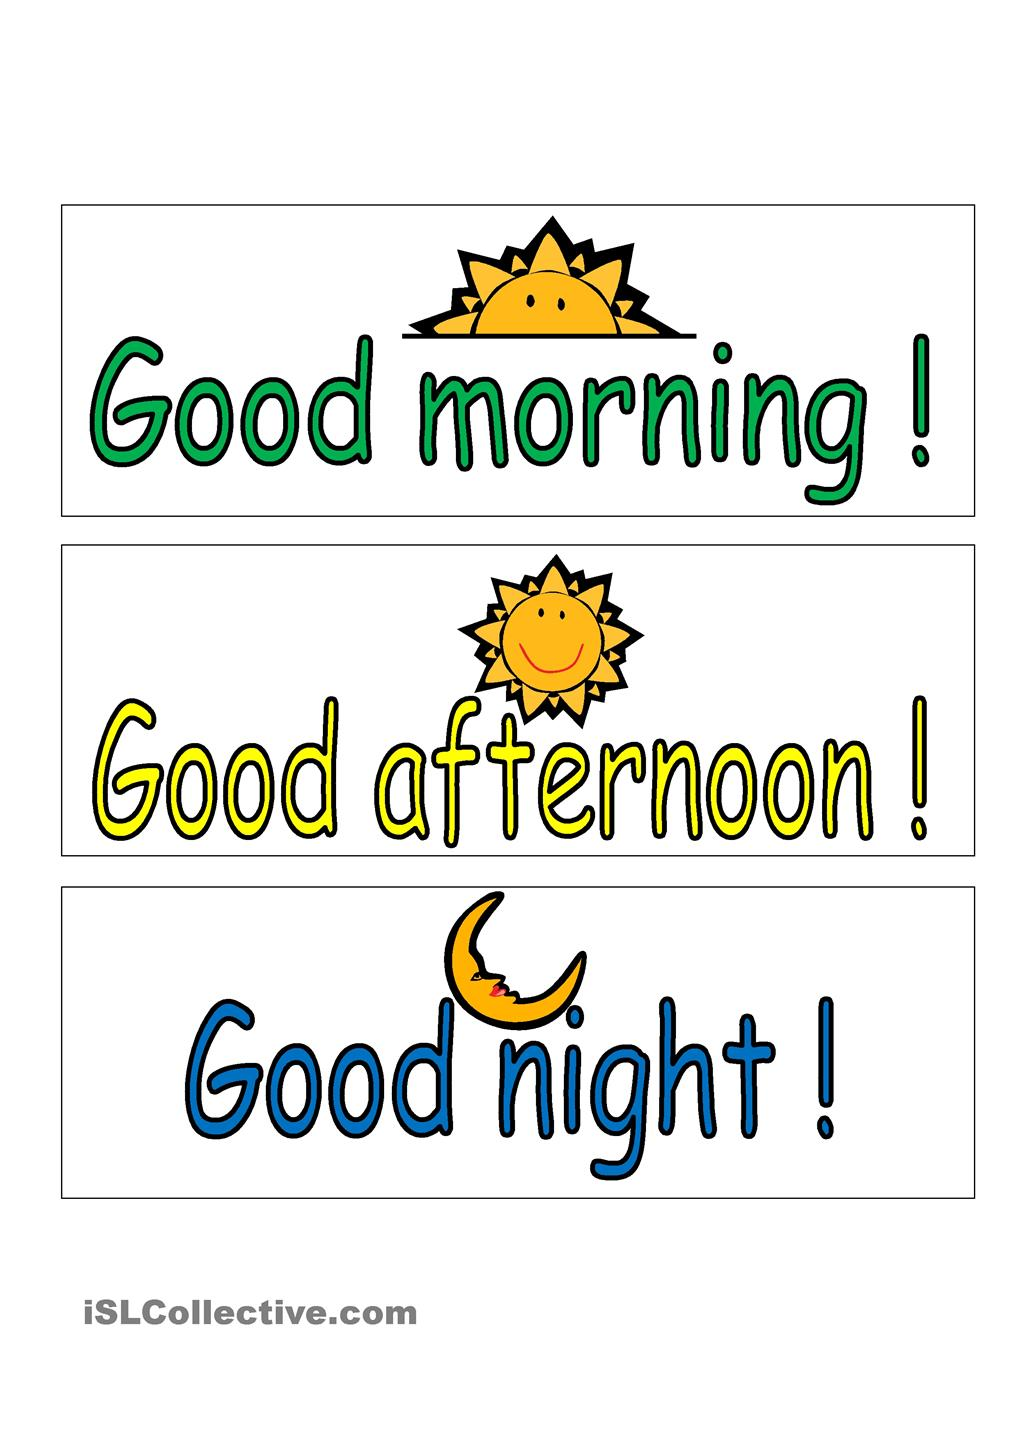 Changing To Night  clipart afternoon Night Good Good Afternoon Good